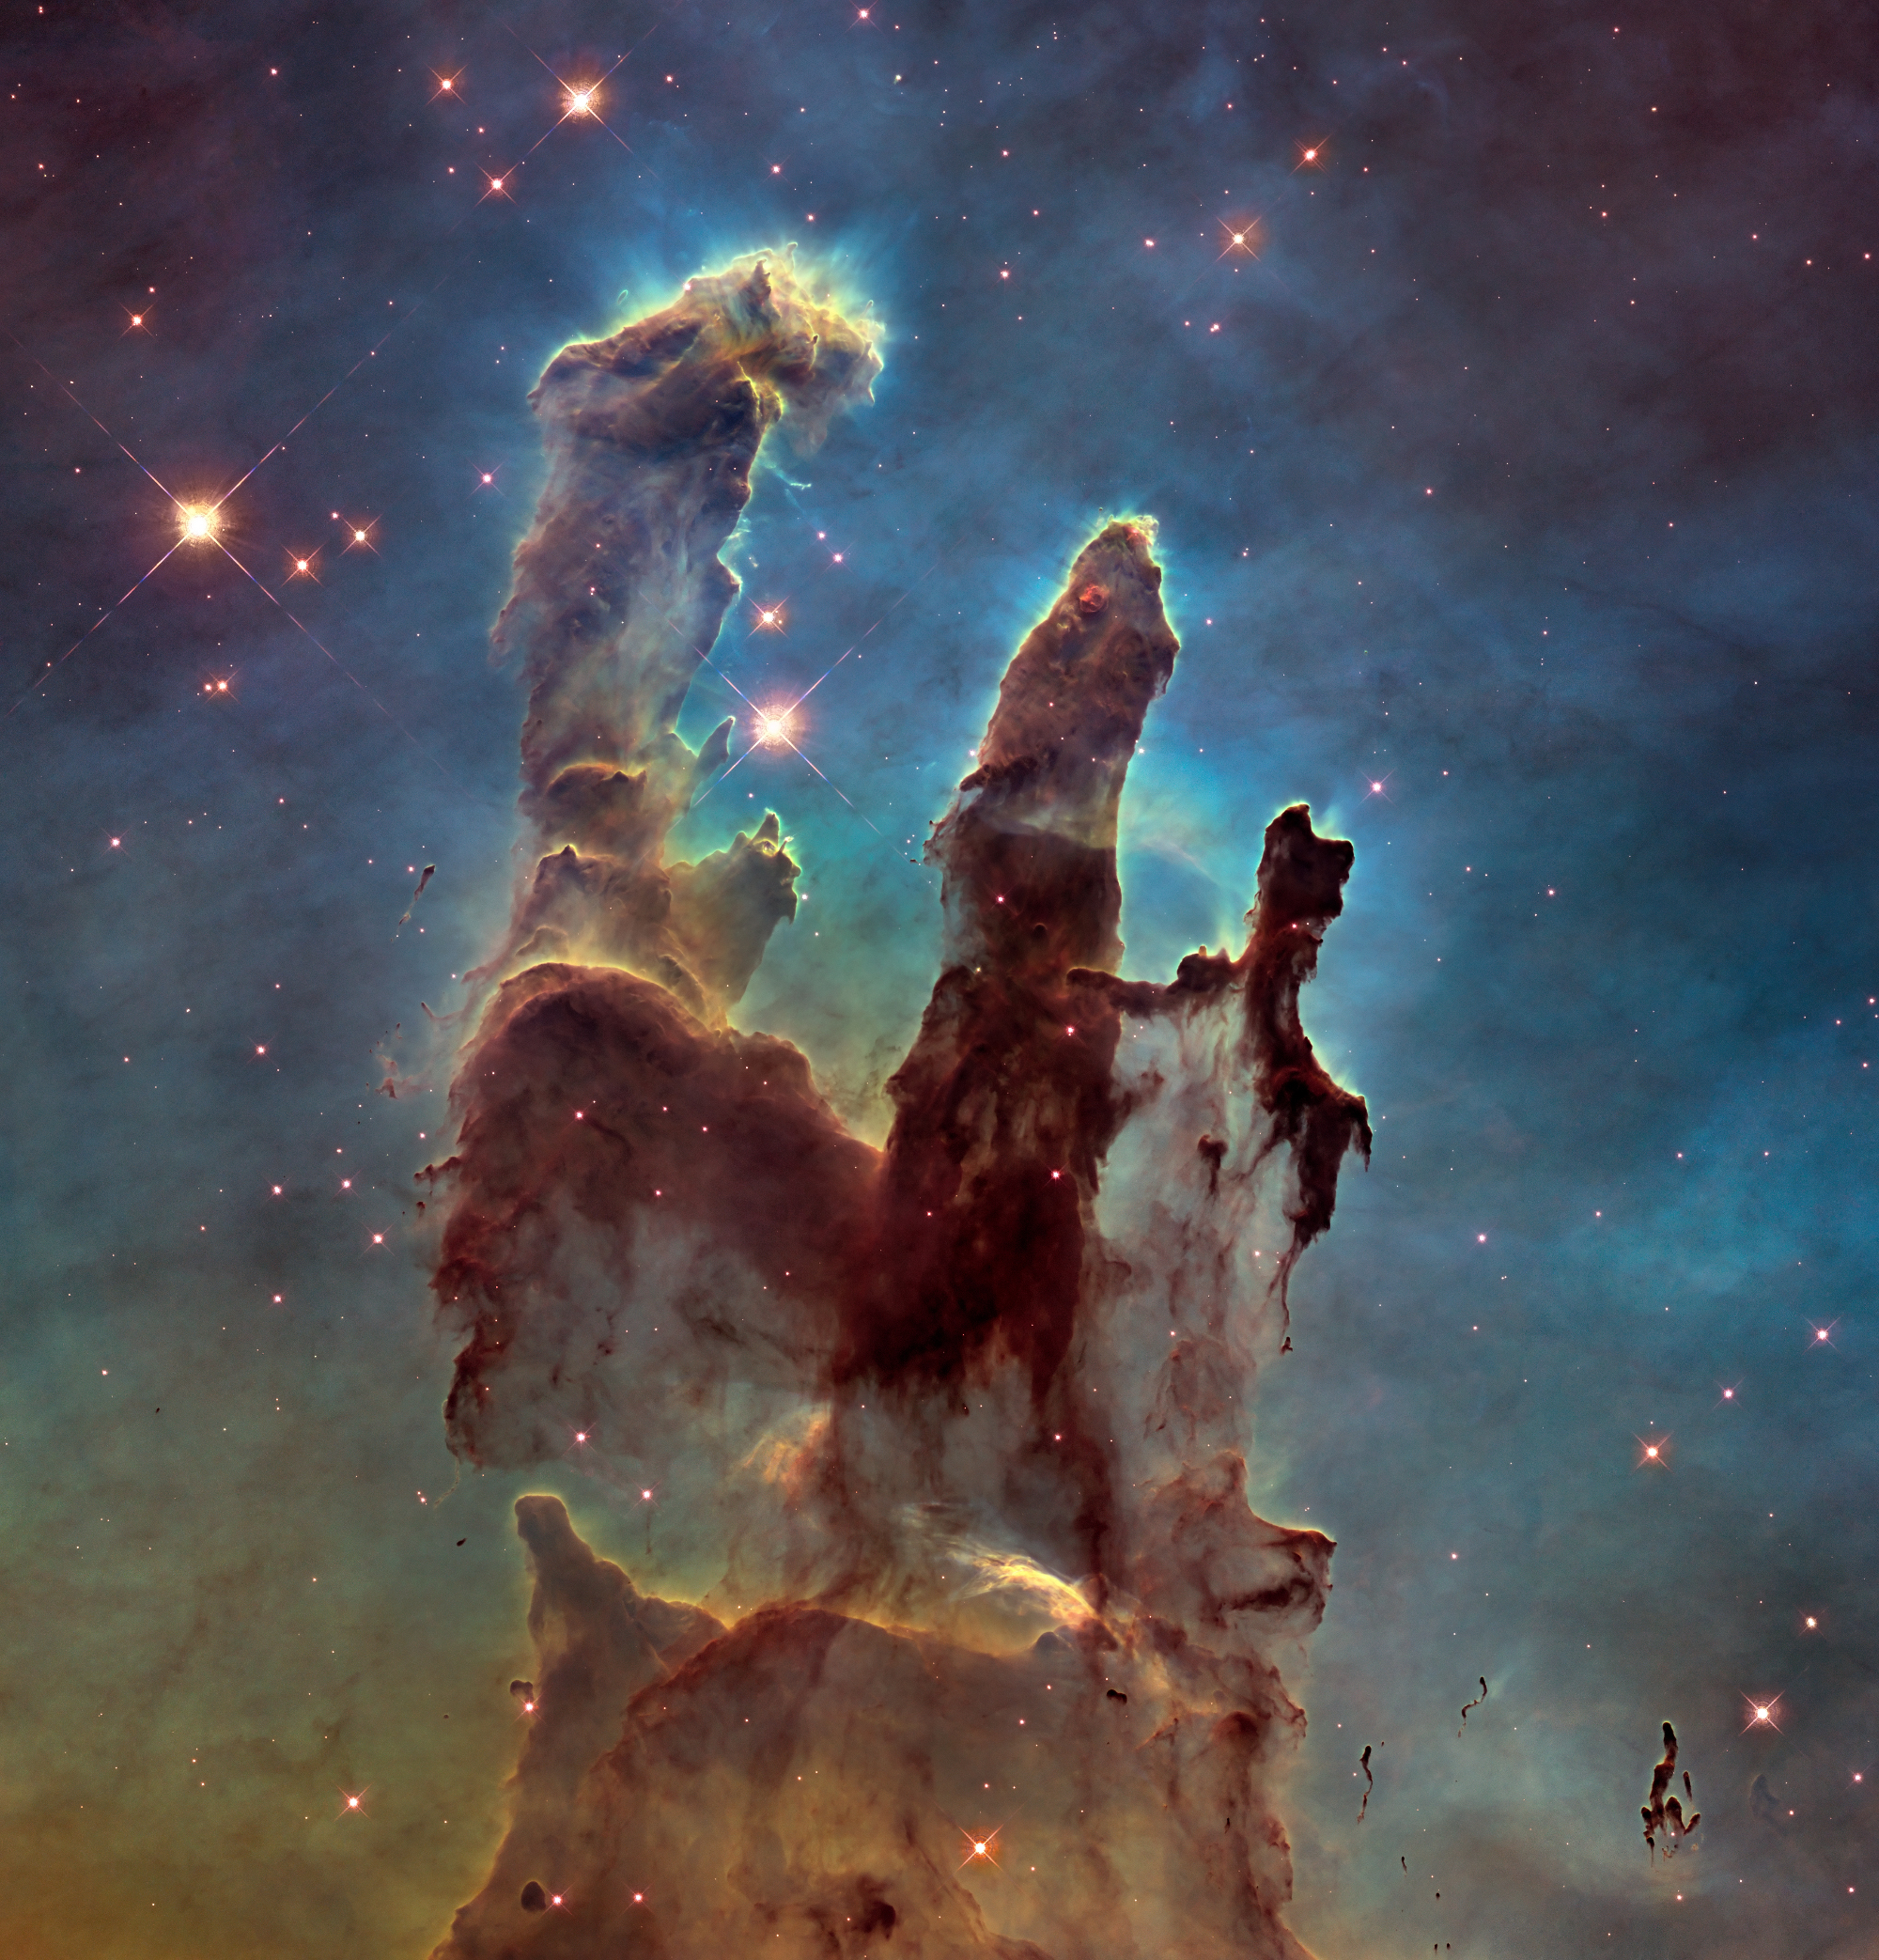 Hubble Space Telescope image of the Pillars of Creation taken in 2014.